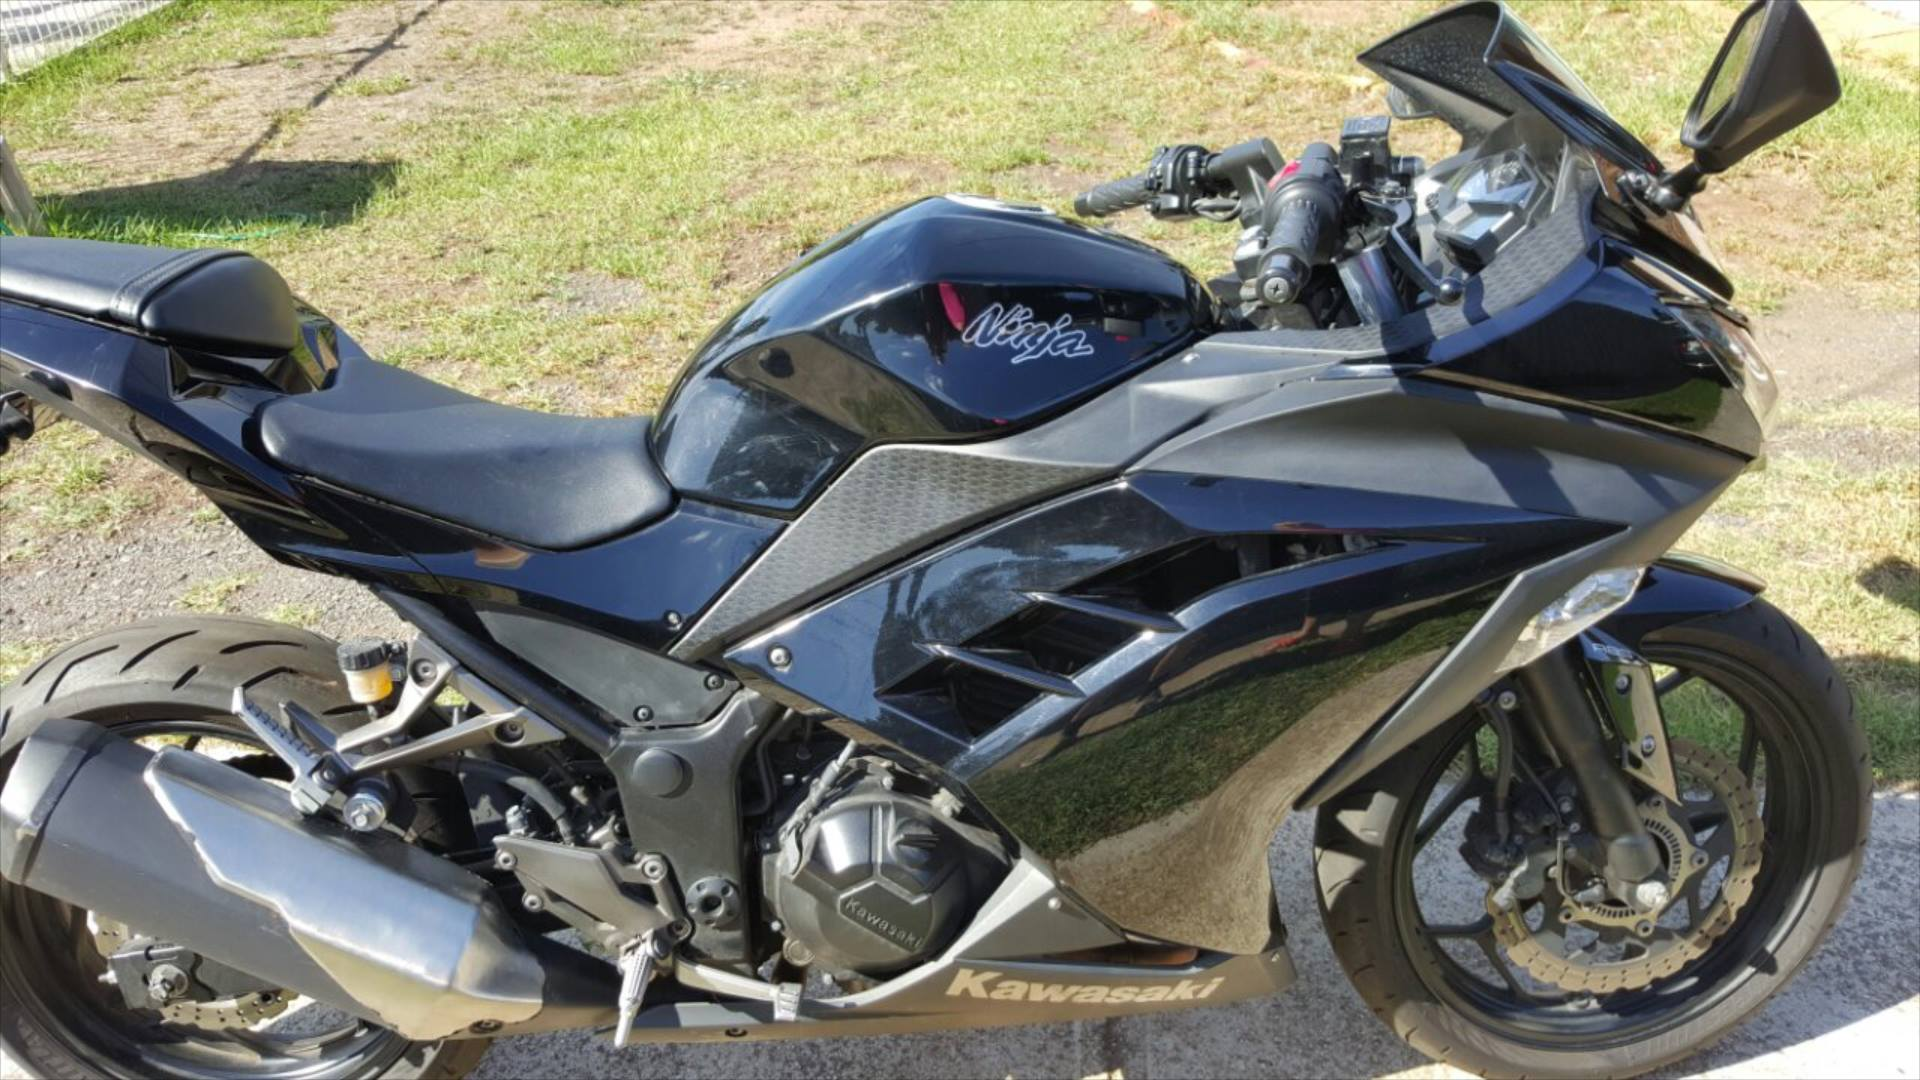 2013 kawasaki ninja 300 abs bike sales vic melbourne 2945482. Black Bedroom Furniture Sets. Home Design Ideas